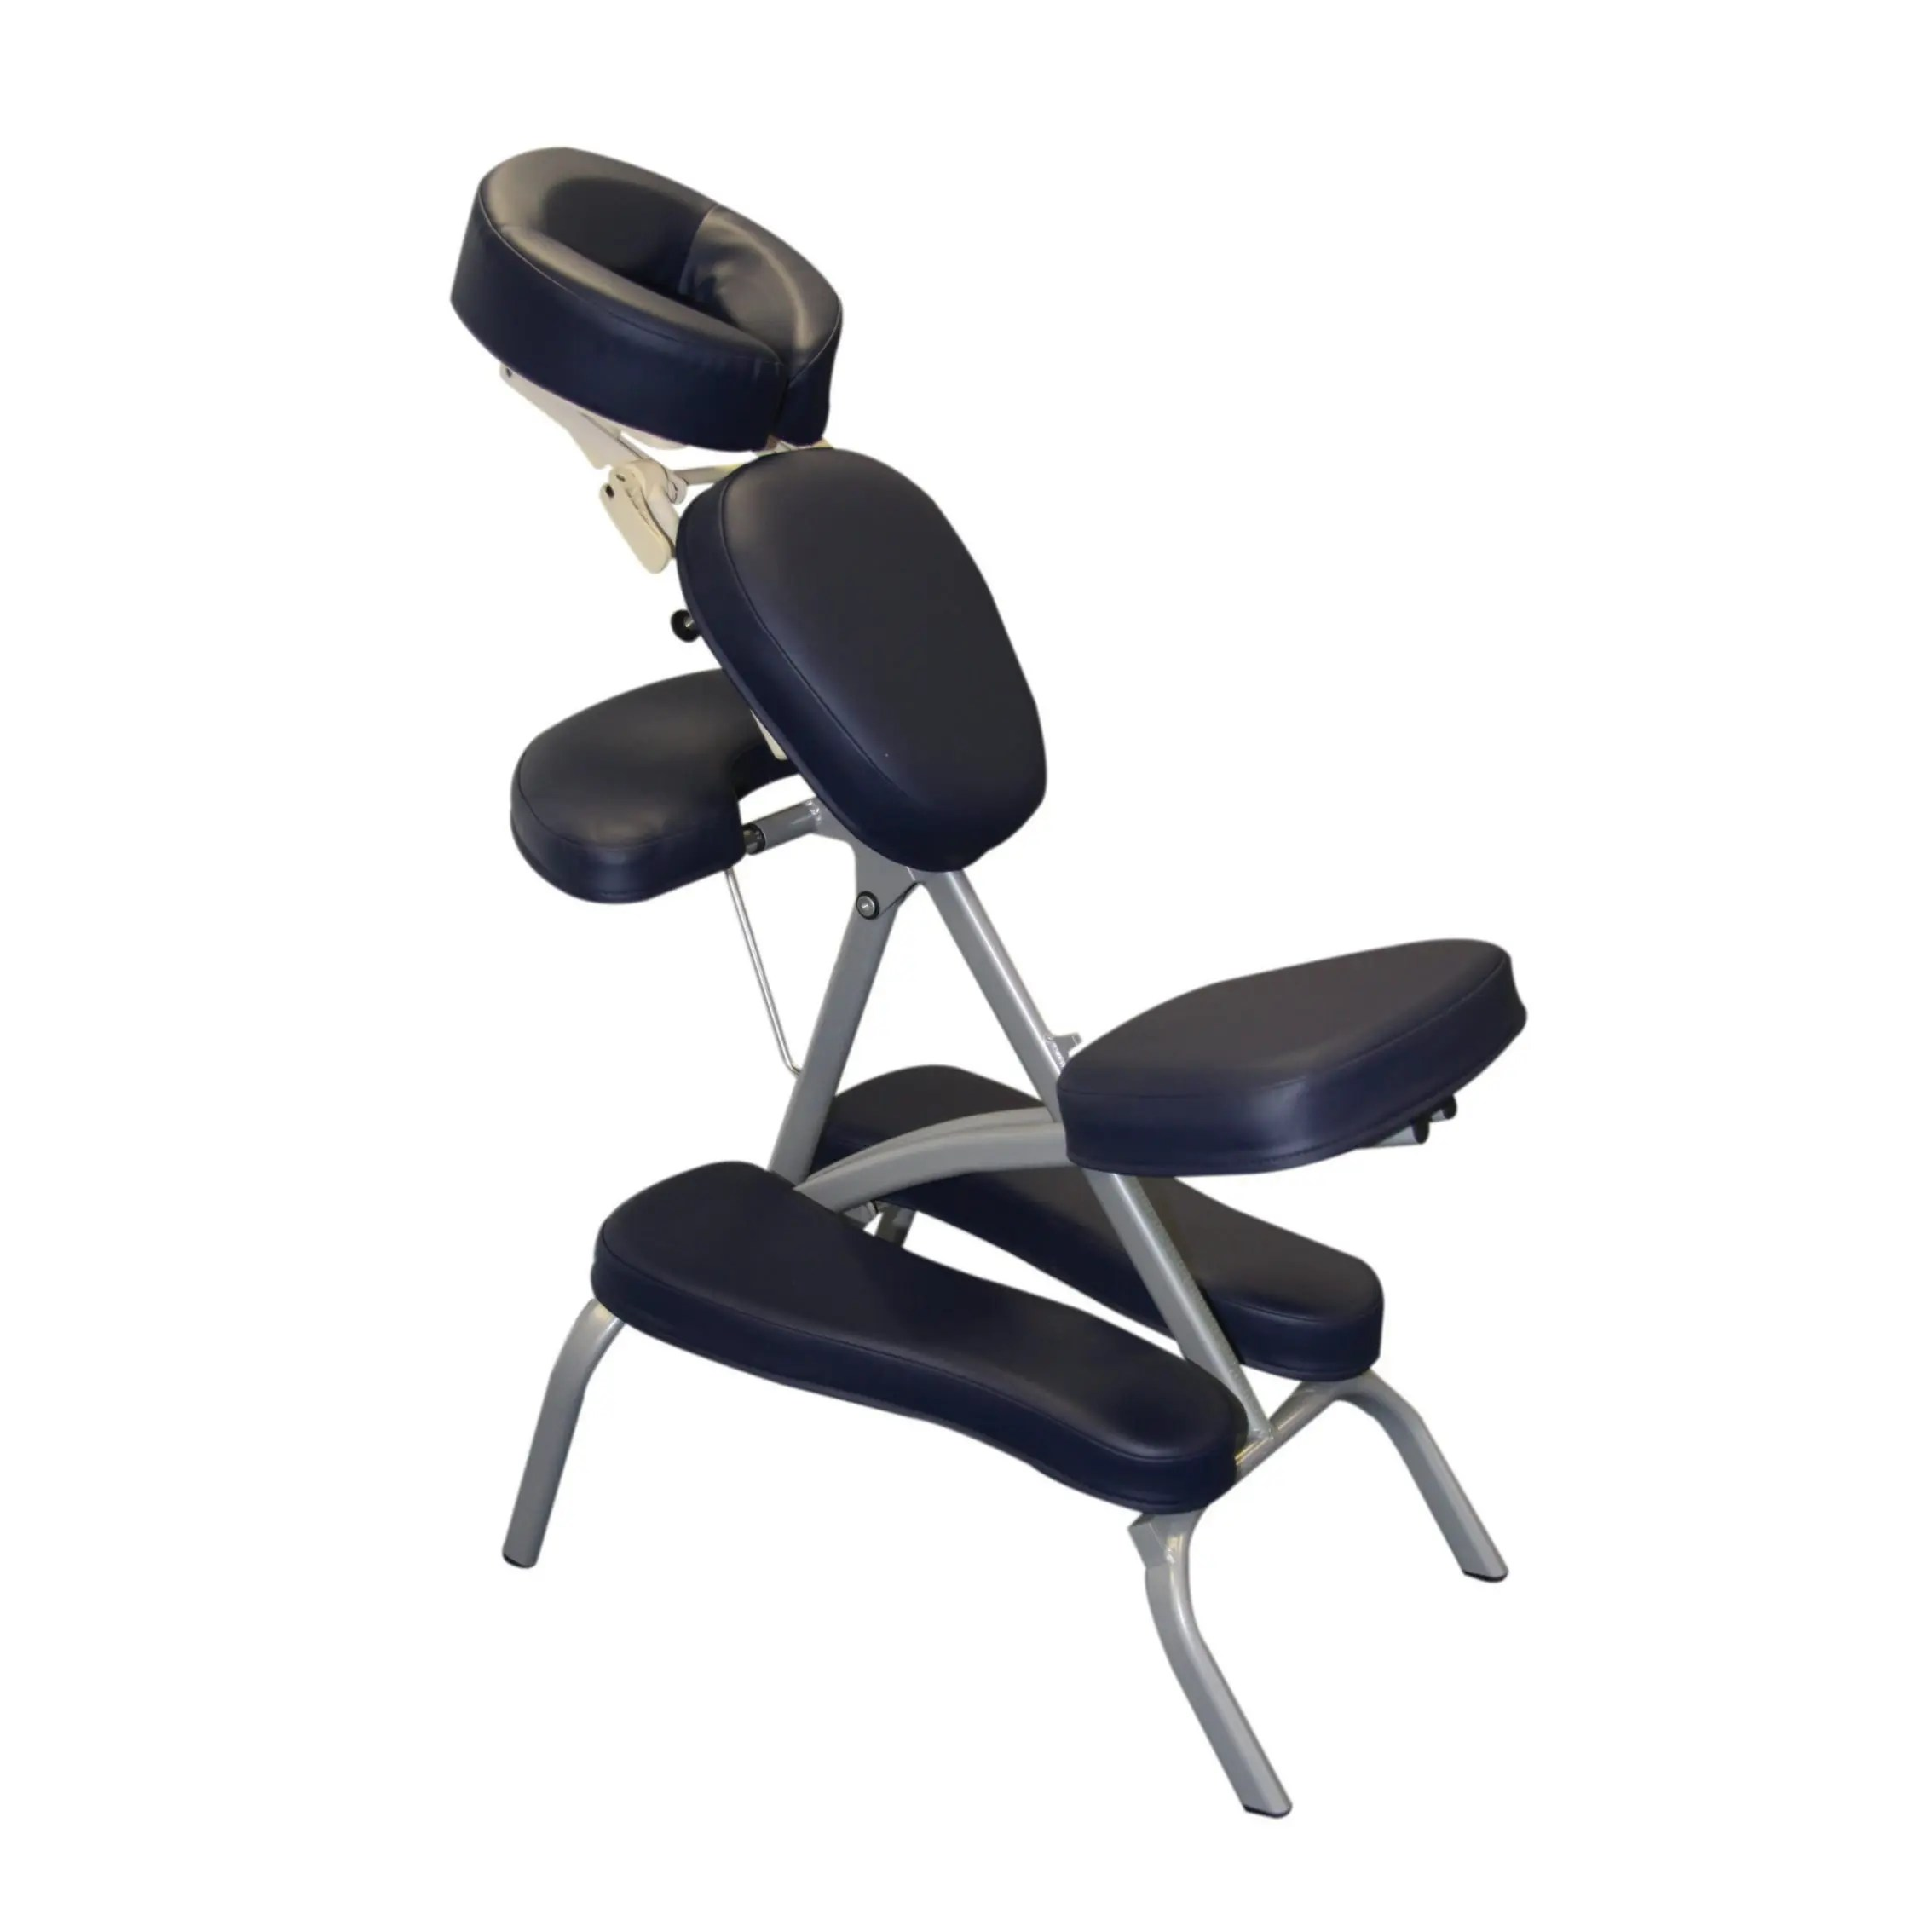 chair massage accessories bar stool chairs body shop quality therapy equipment for all